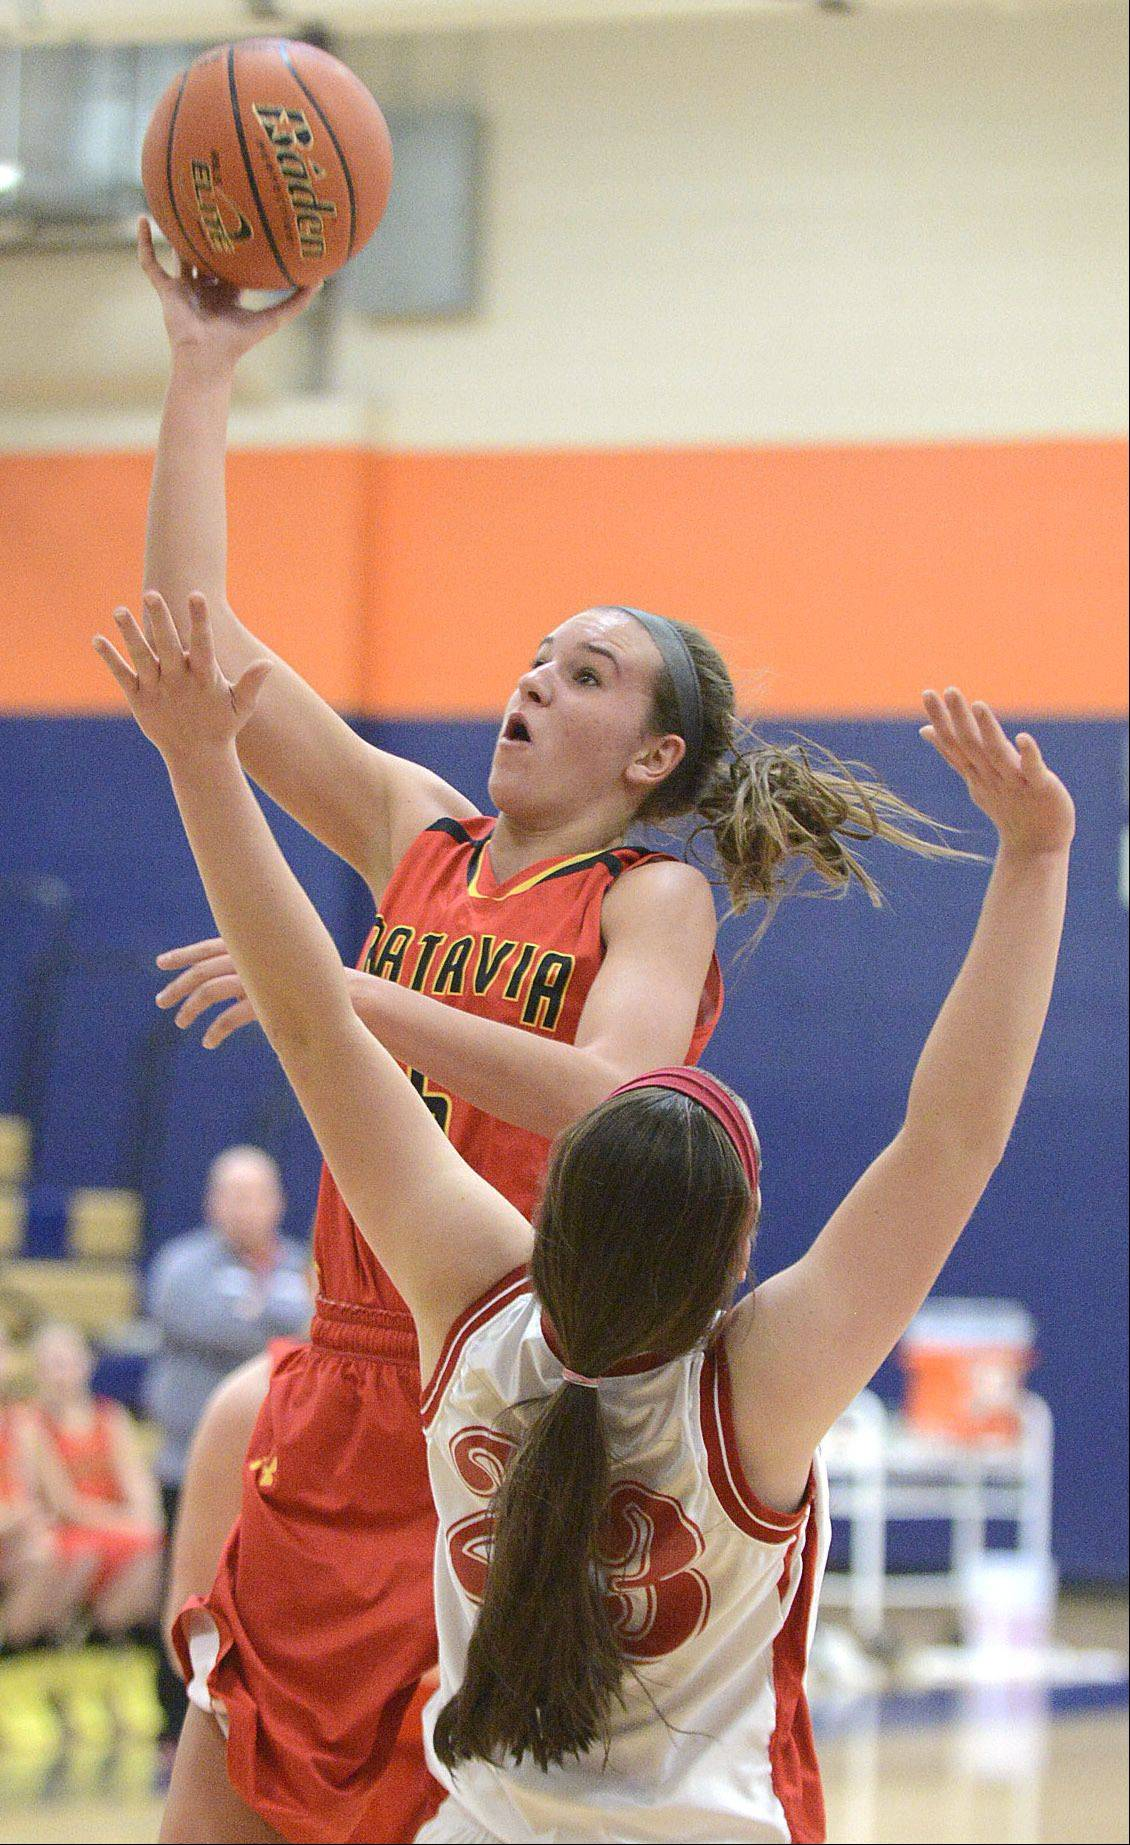 Batavia stays hot, tops Naperville Central